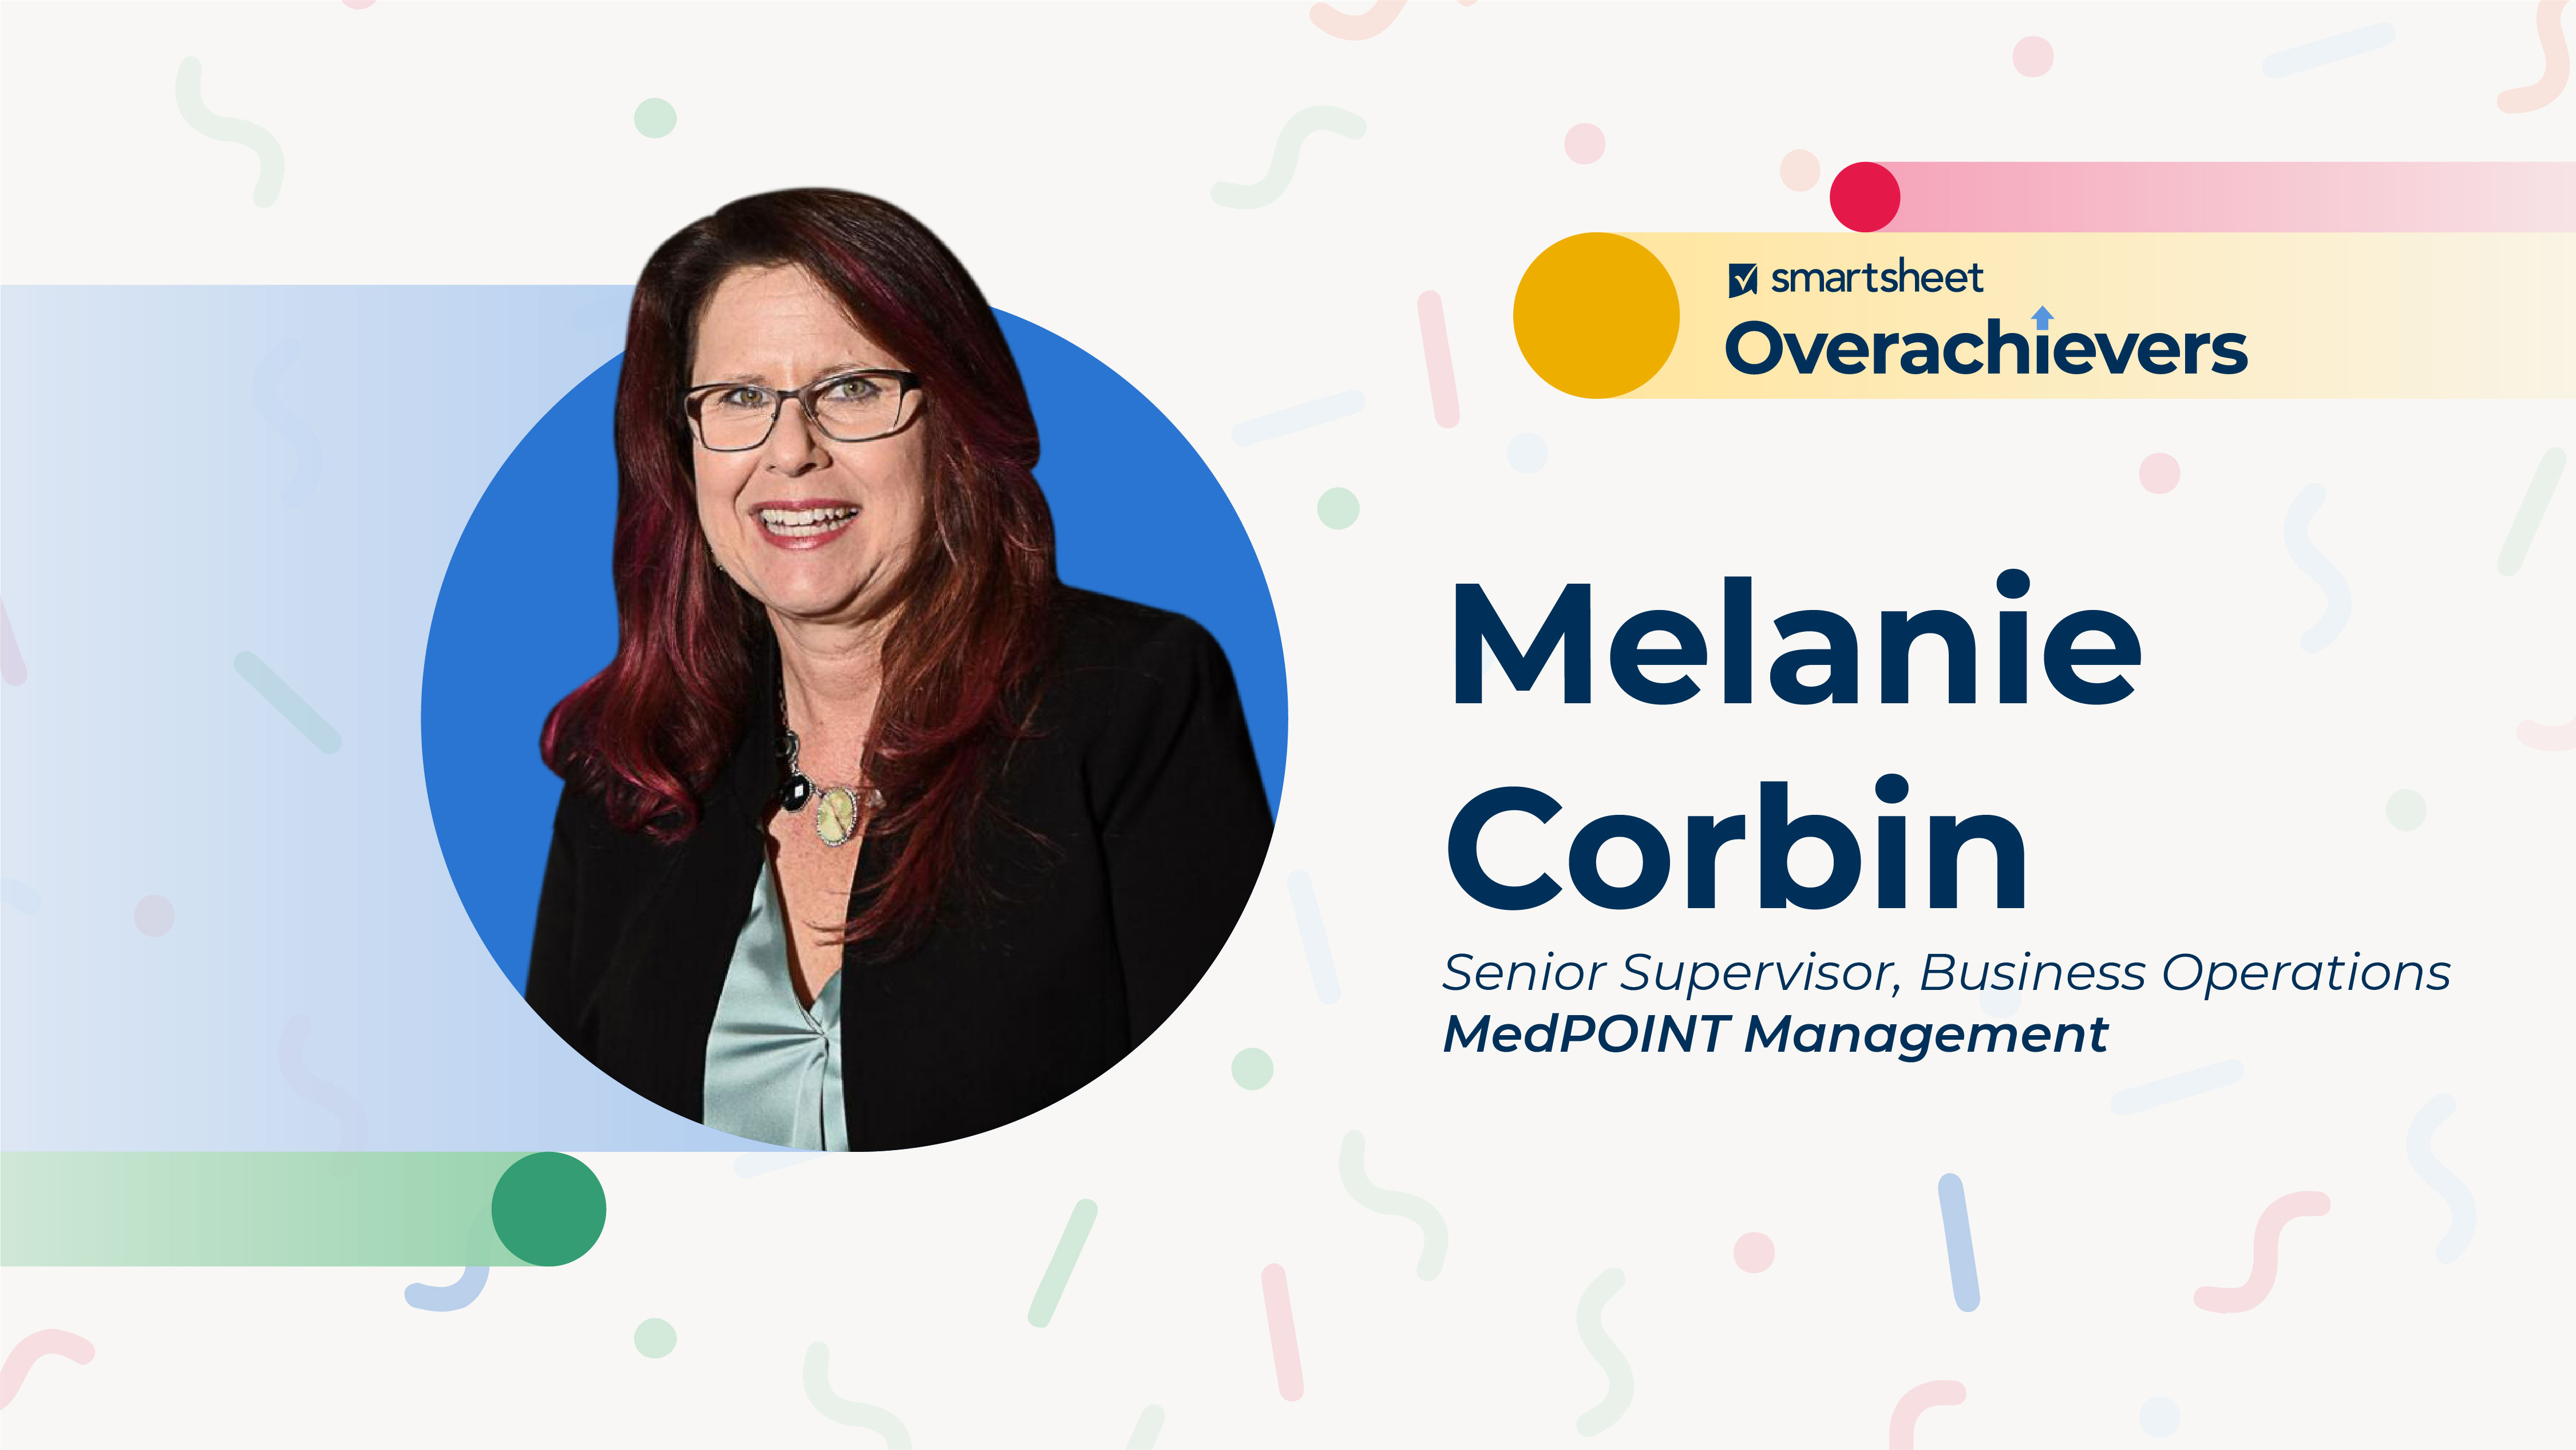 Melanie Corbin, senior supervisor of business operations at MedPOINT Management